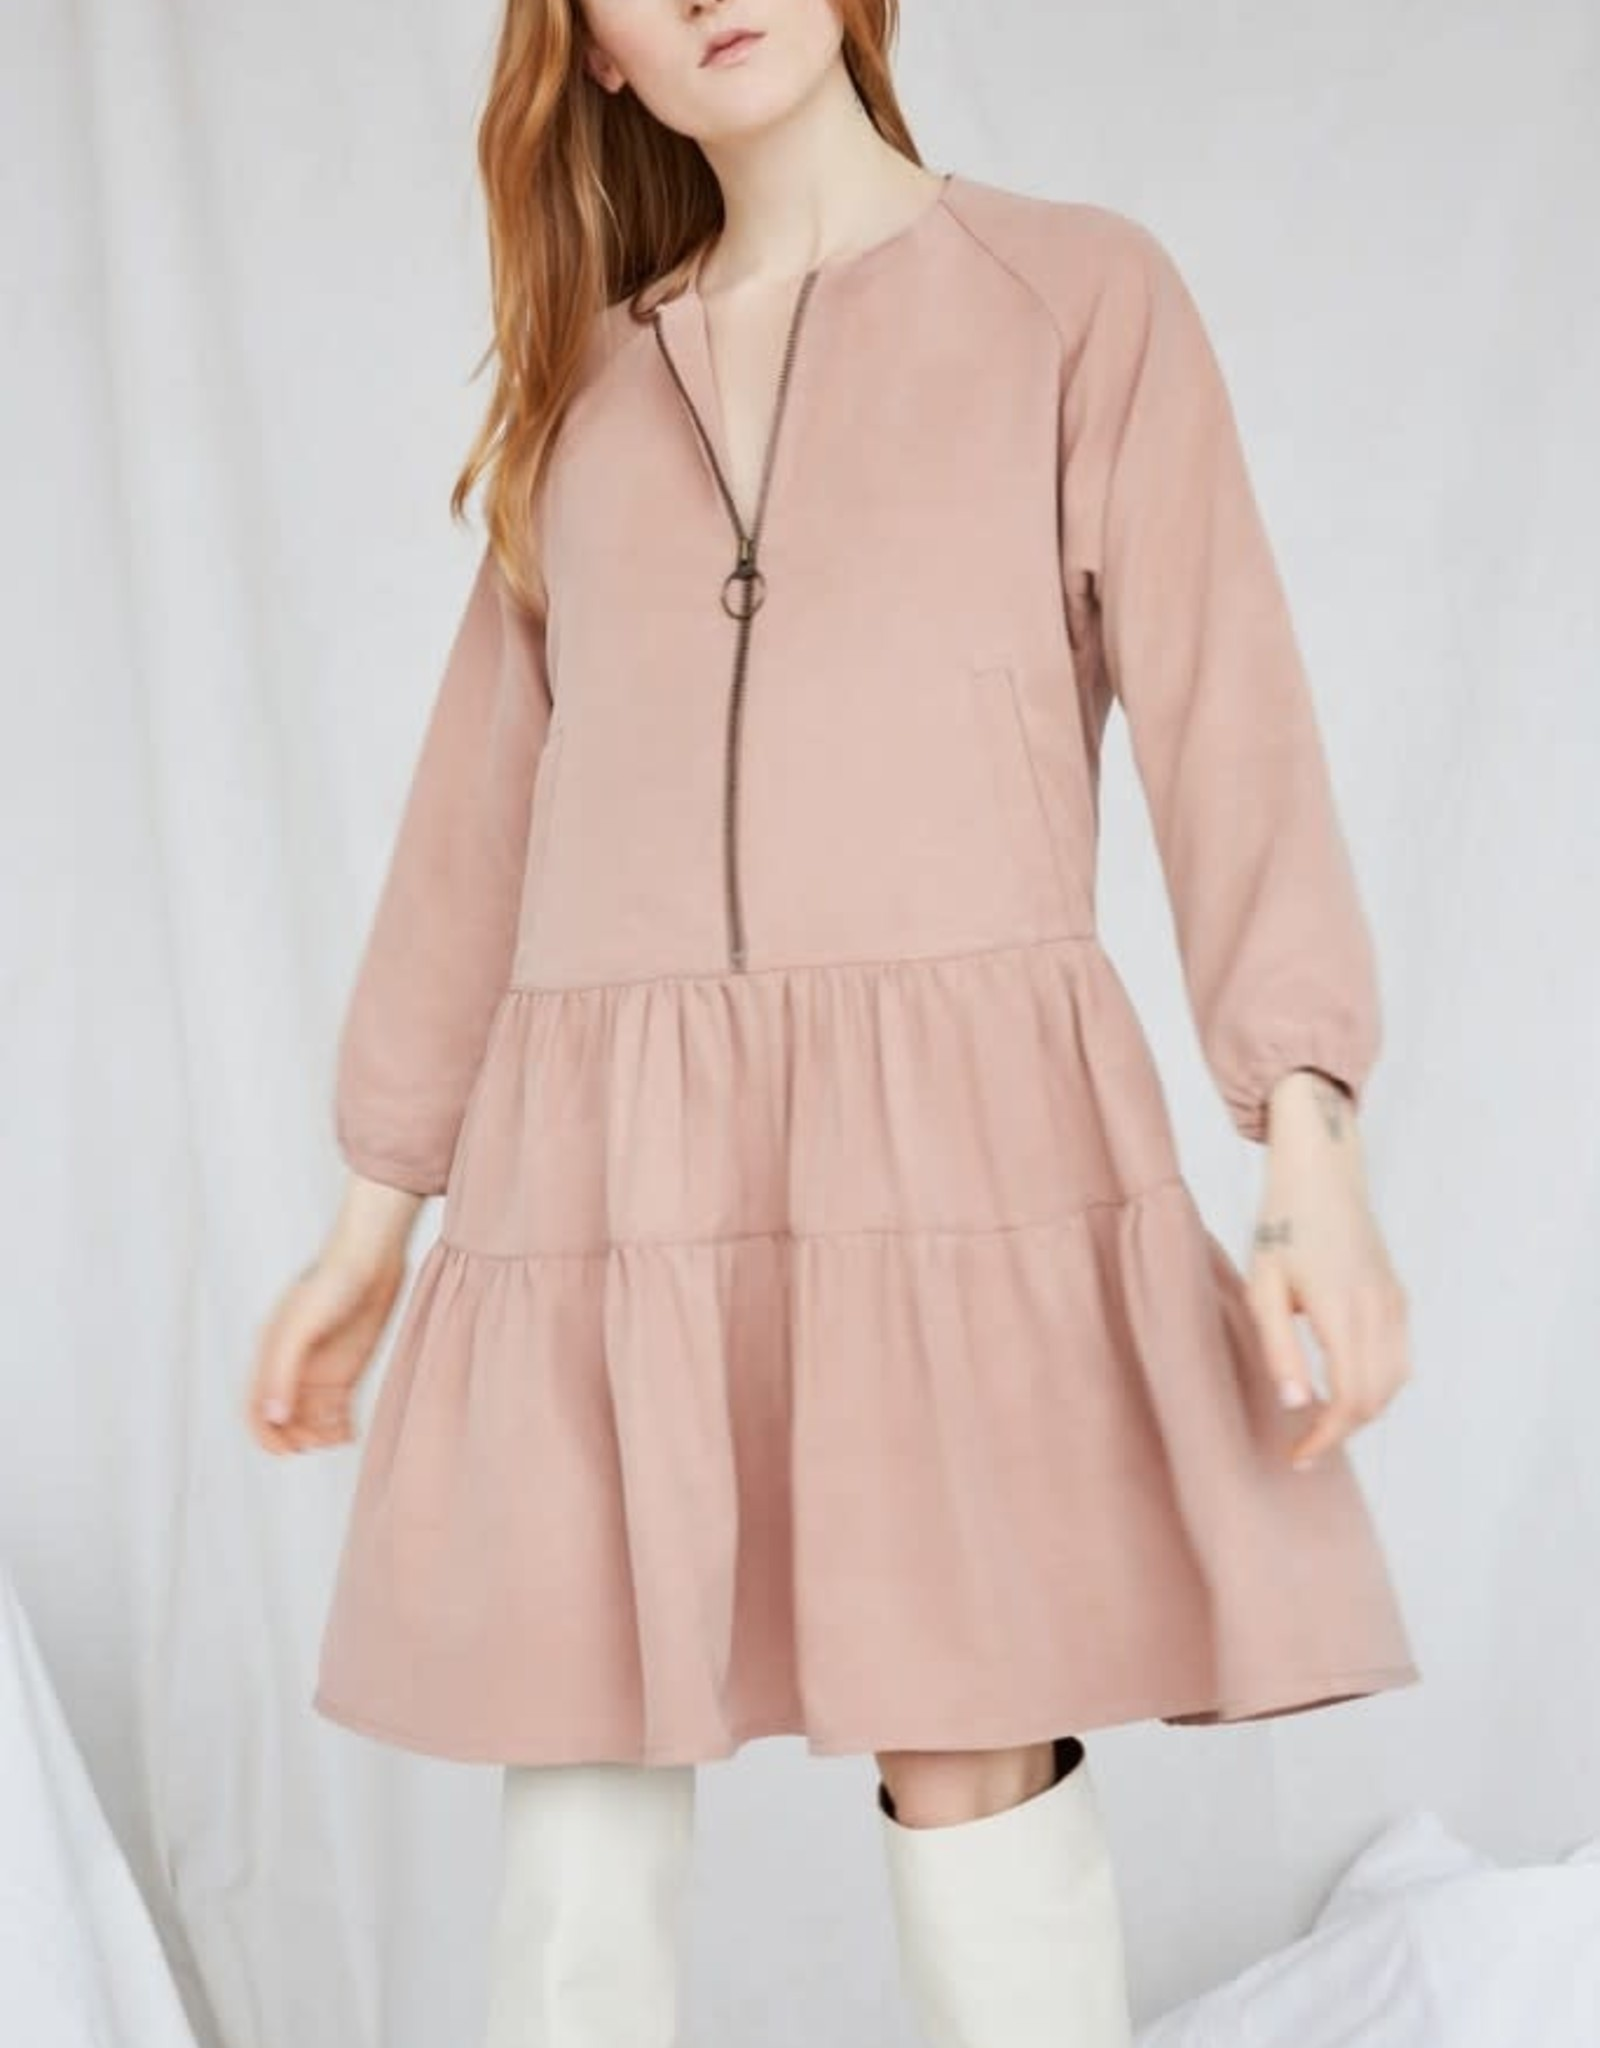 Eve Gravel Robe Primrose AH2021 Ève Gravel Rust